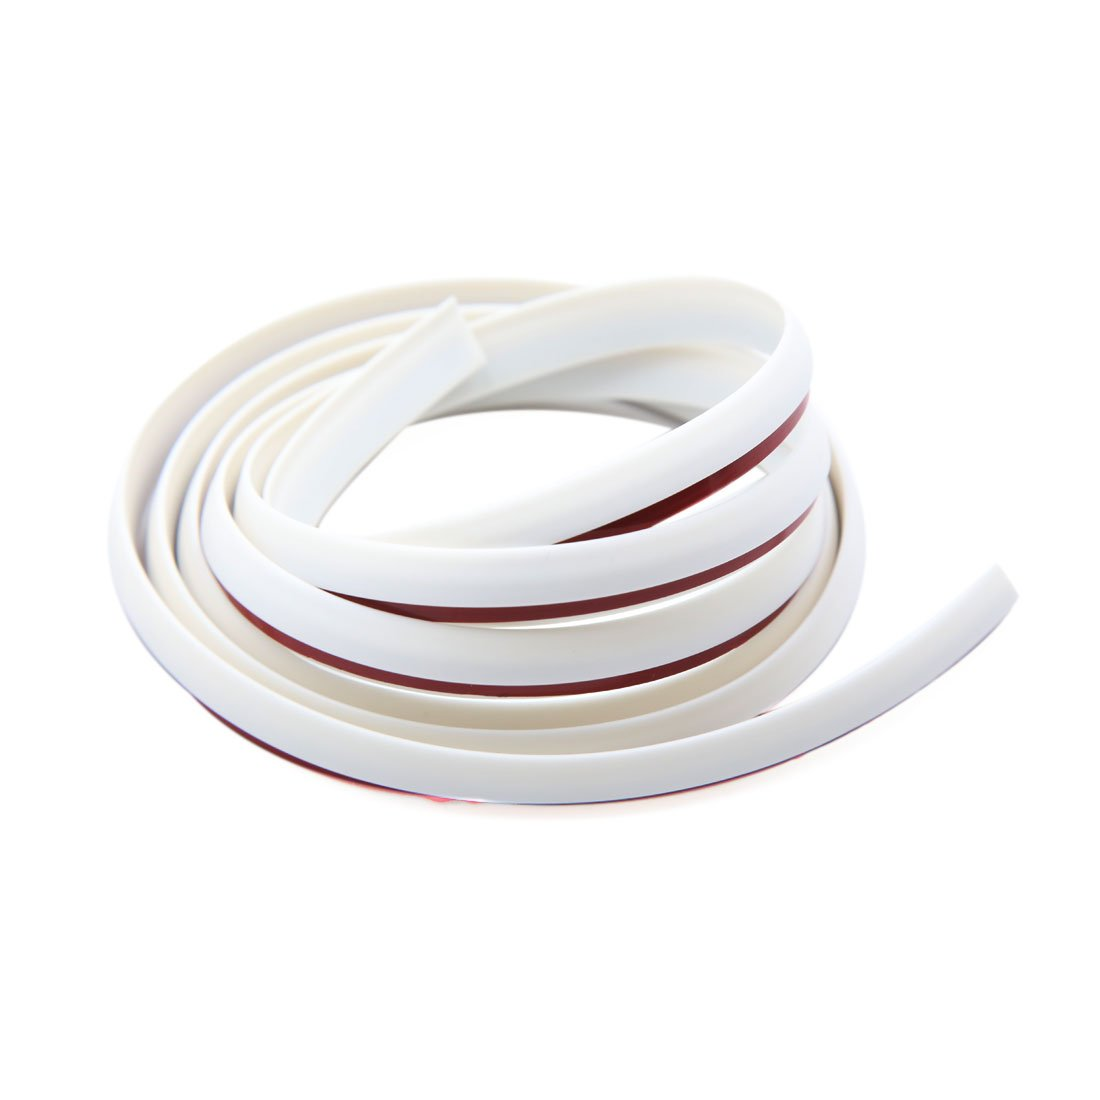 uxcell a16122900ux0100 White Rubber Seal Door Edge Guard Mold Trim Protection Strip for Car Vehicle